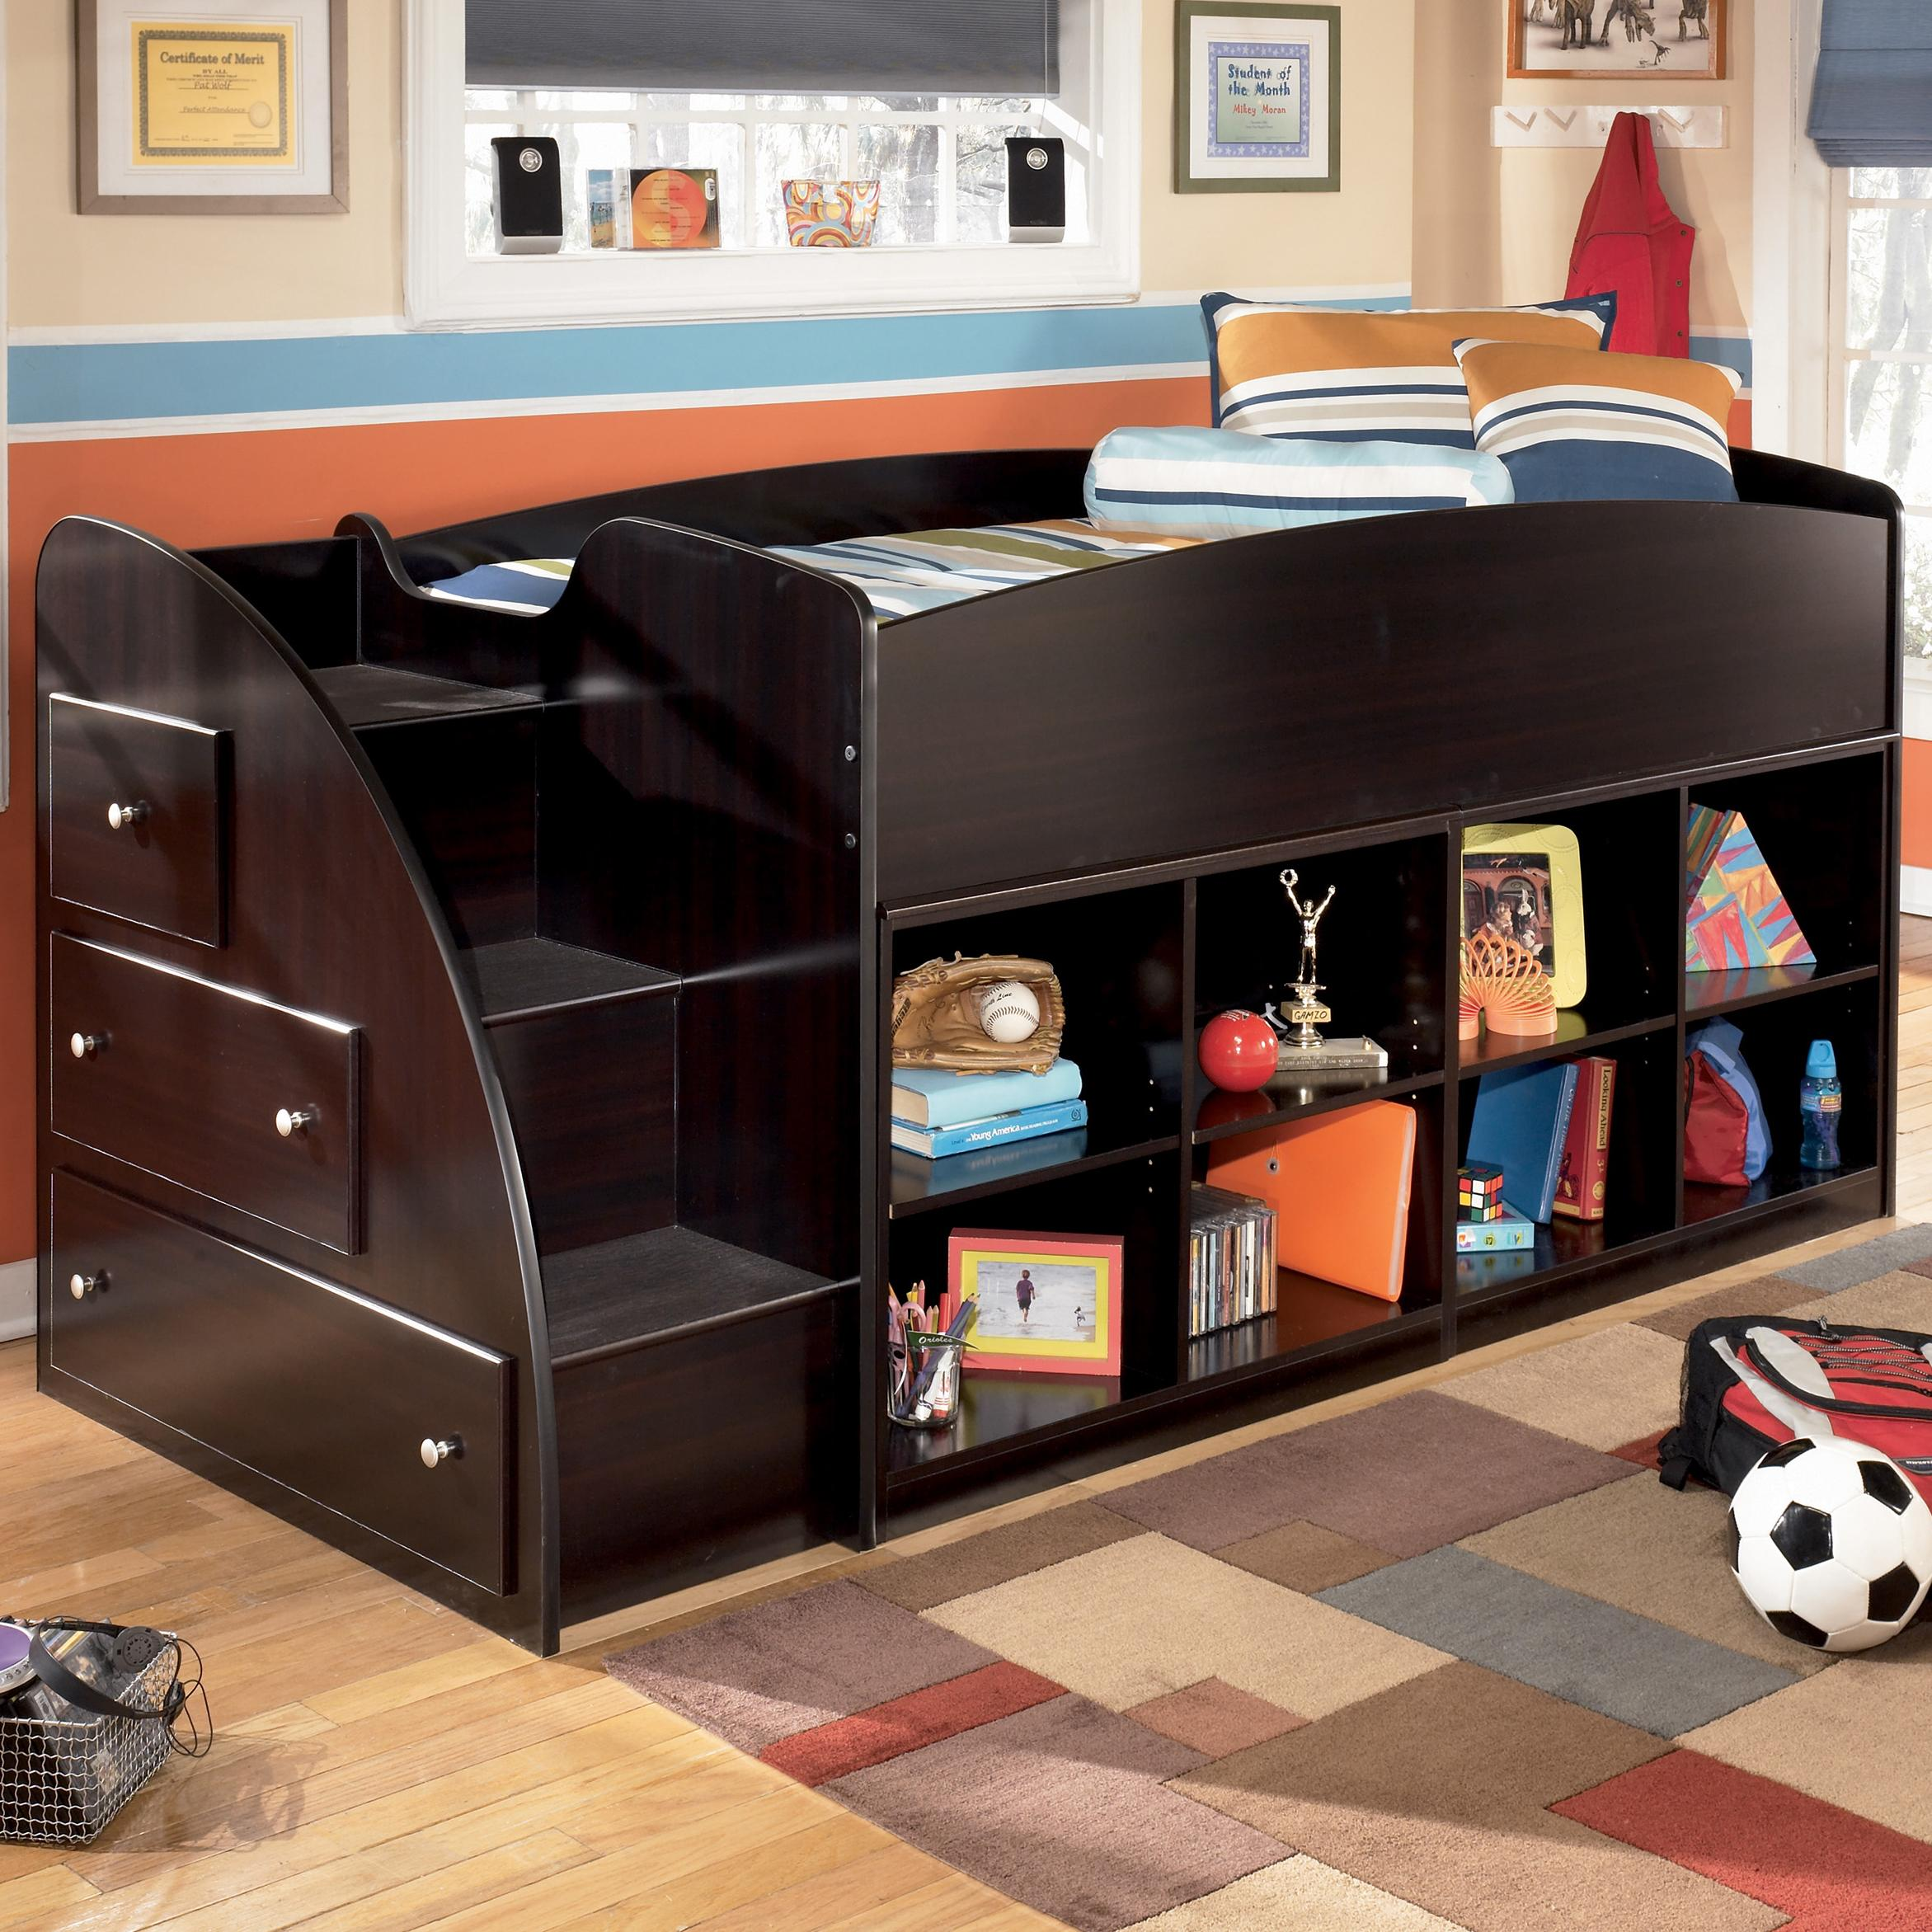 Twin beds for kids with storage - Signature Design By Ashley Embrace Twin Loft Bed With Bookcase Storage